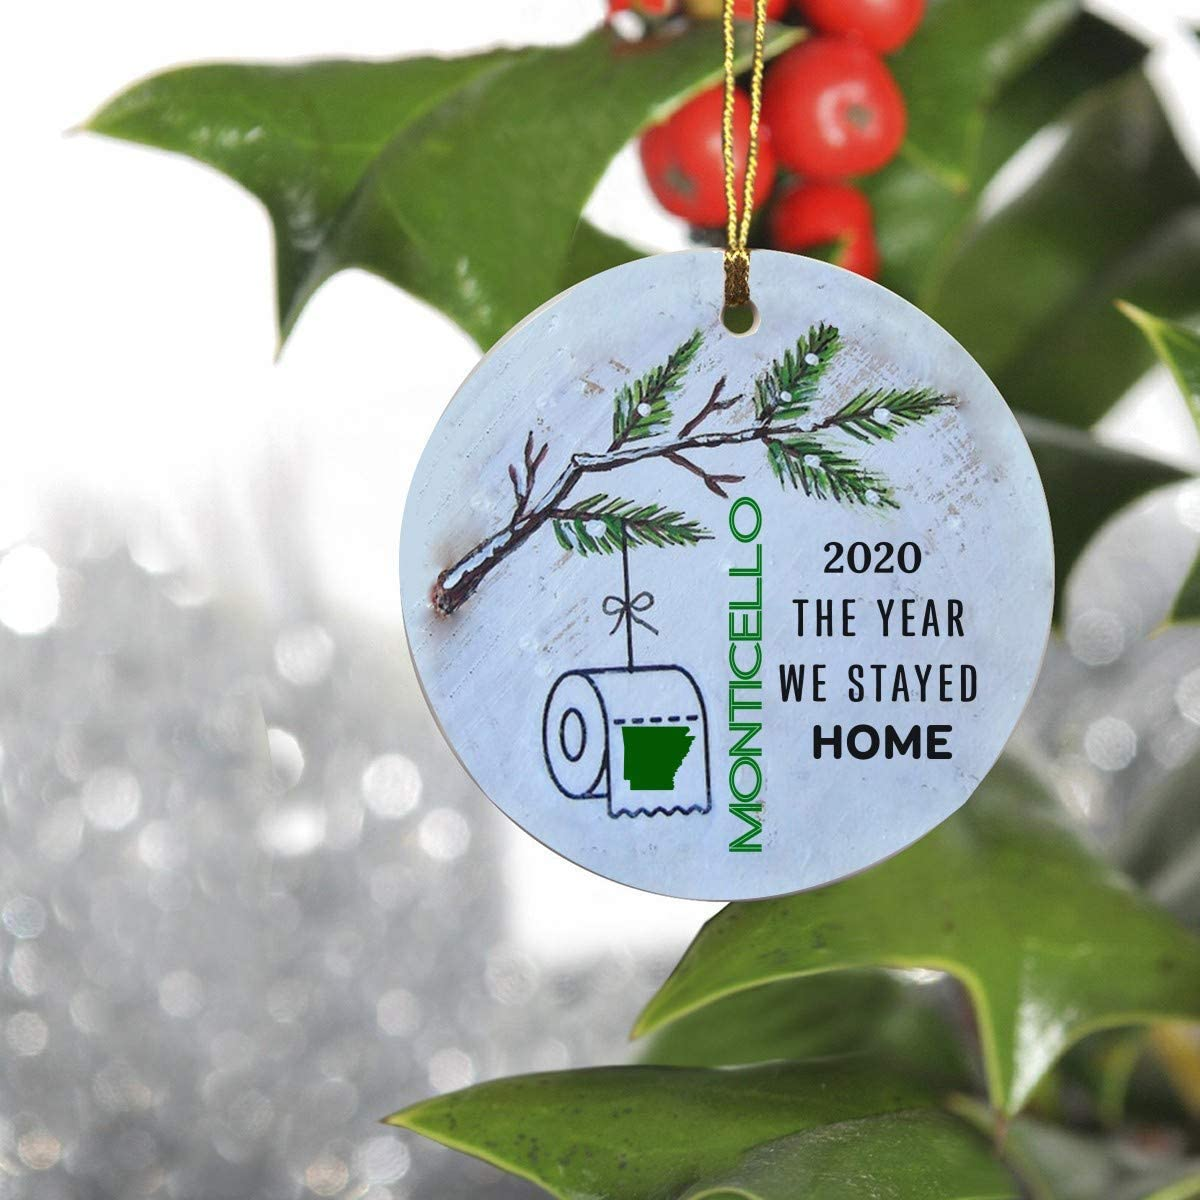 Quarantine Ornaments For Christmas Tree - 2020 The Year We Stayed Home Monticello Arkansas State - Social Distancing Funny Novelty Gift For Family - Ornament 3 Inches